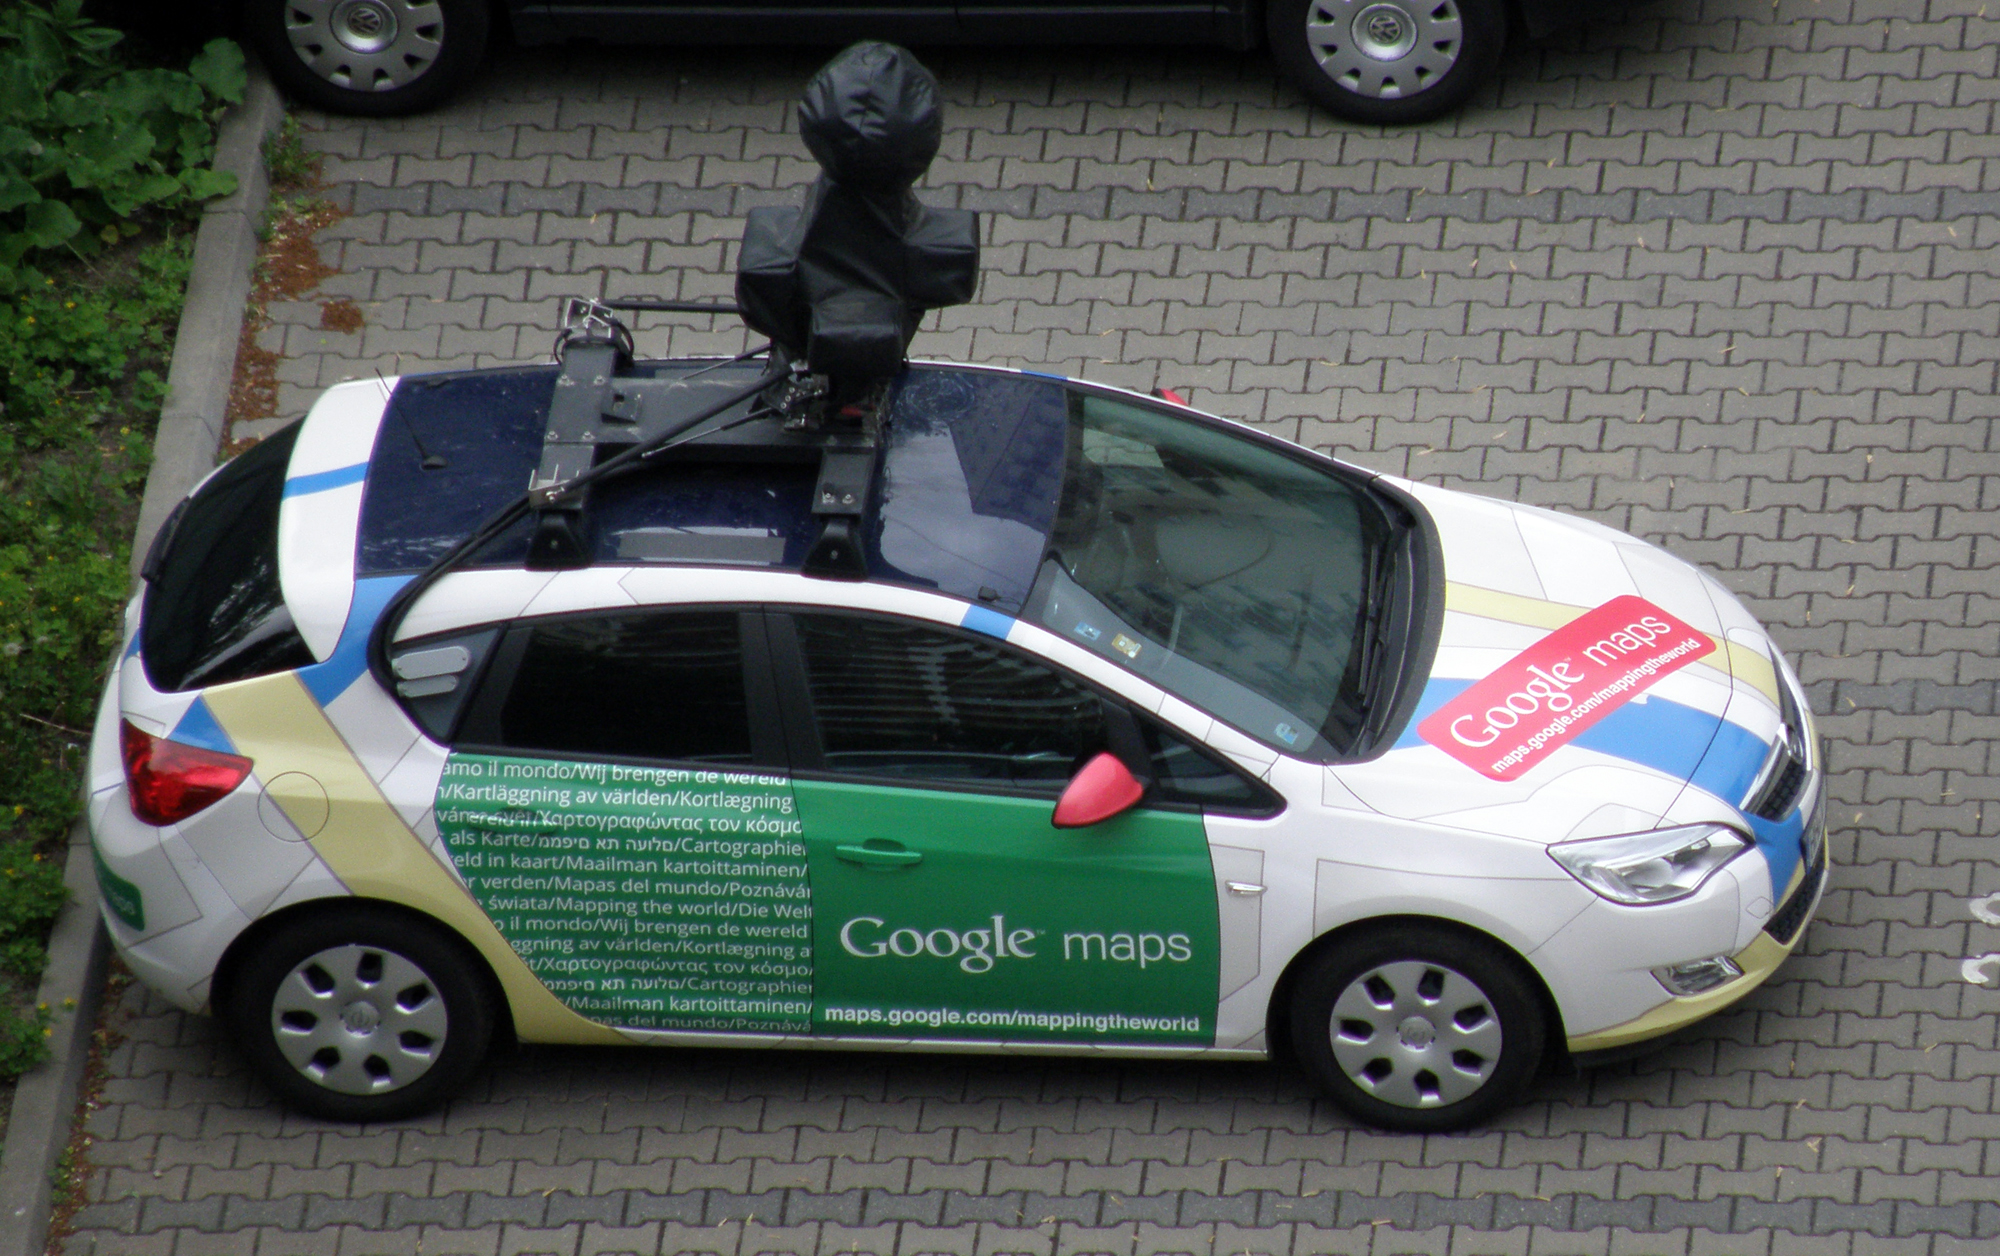 googles maps with Piden Frenar Los Autos De Google Maps on 2434 besides Piden Frenar Los Autos De Google Maps further La Recherche Dimages Similaires Integree A Google additionally Android further Sveriges Googlelandskap.